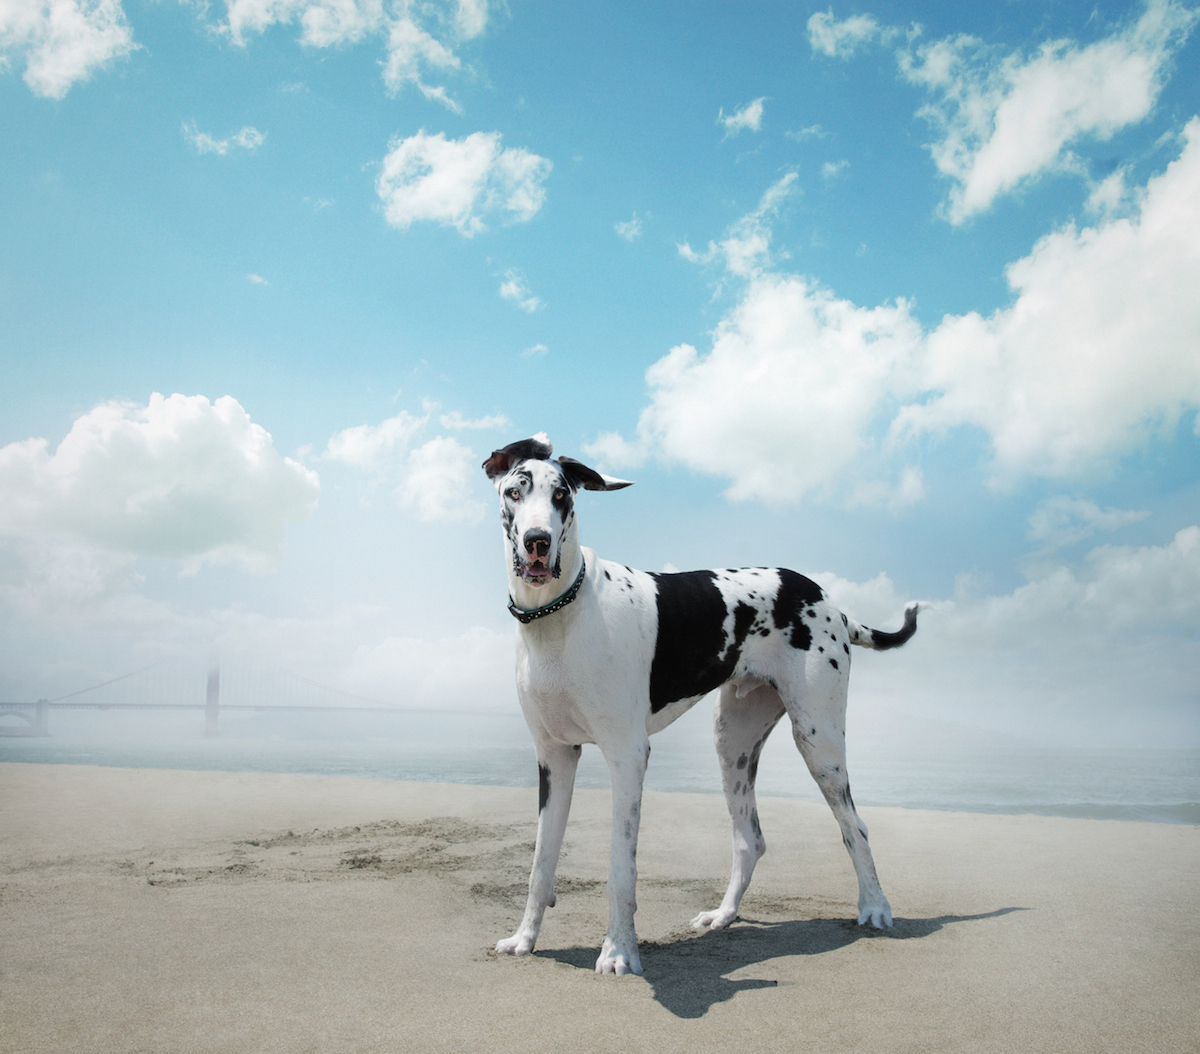 lifestyle-dog-photography-for-pet-brands-los-angeles-san-francisco-6.jpg